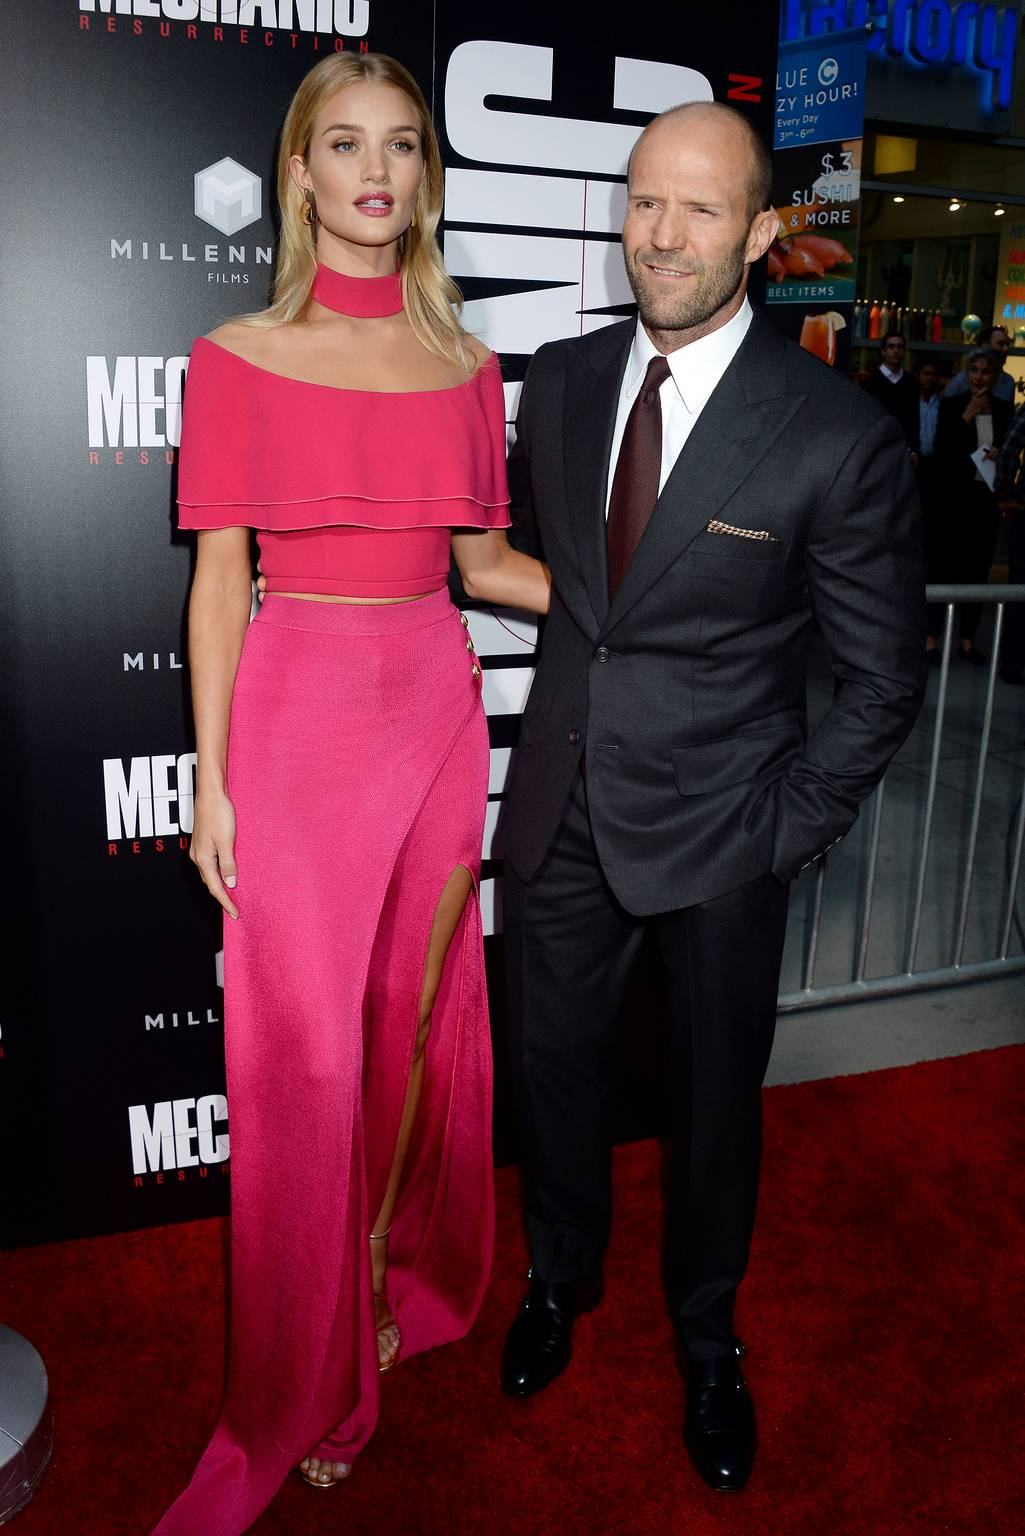 Full HQ Photos of Rosie Huntington Whiteley in Pink Dress – Mechanic Resurrection Premiere in Los Angeles